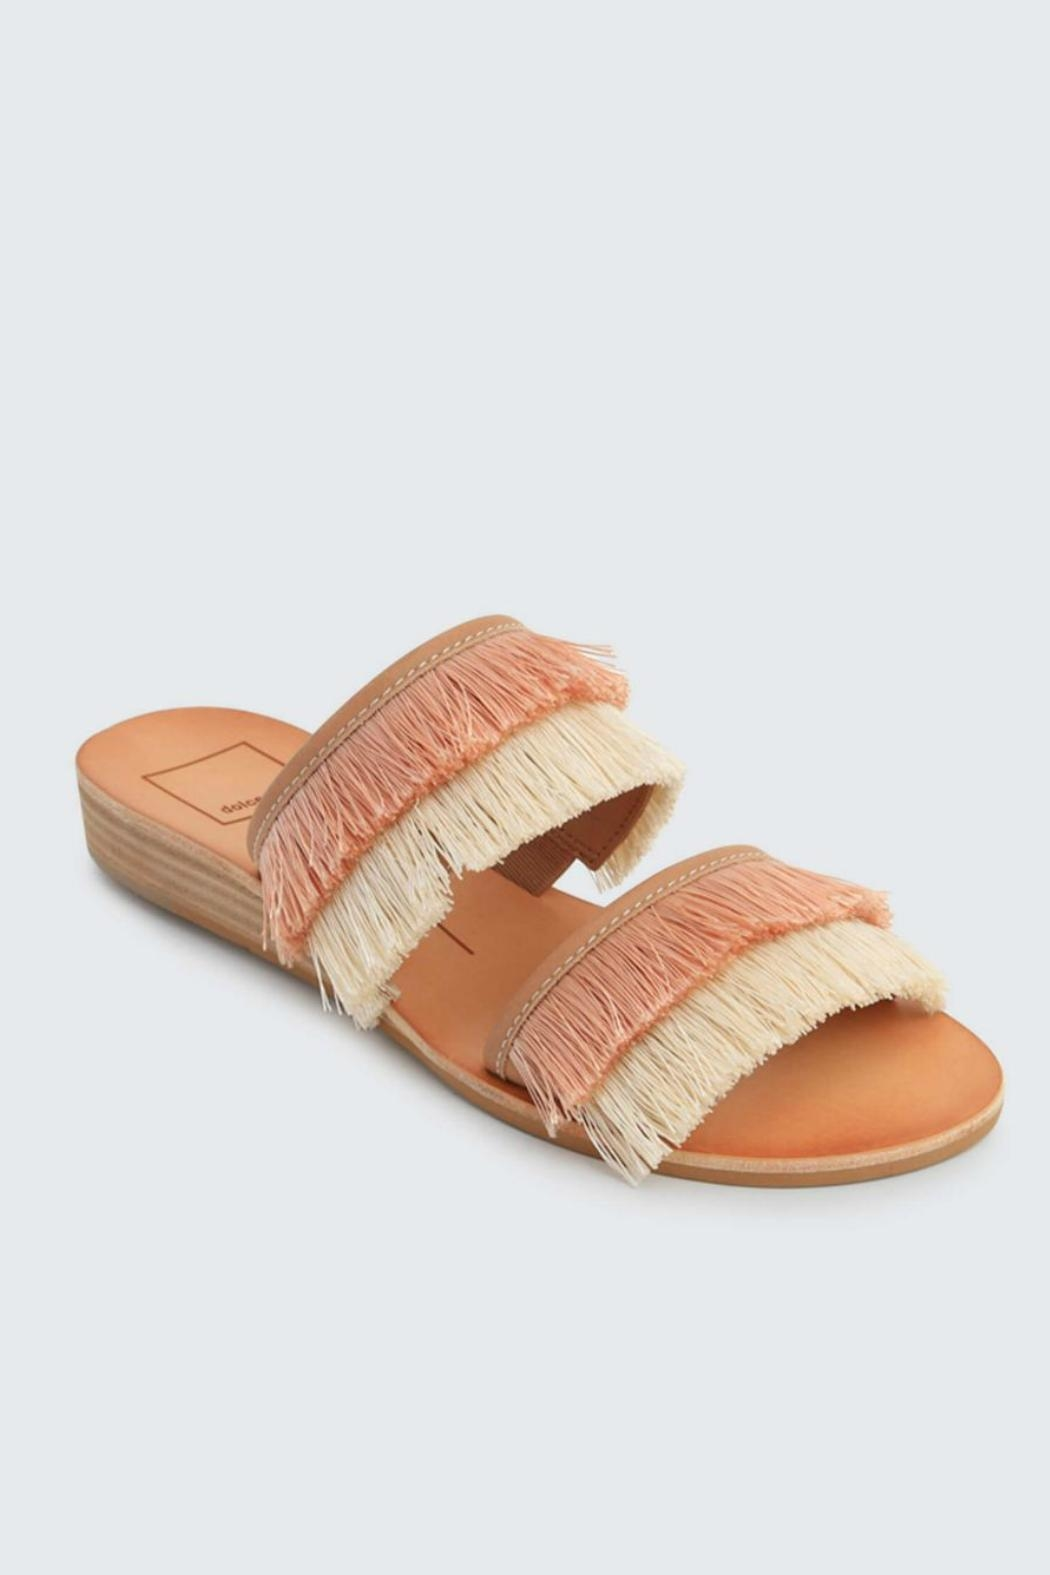 7a69c65dab96 Dolce Vita Haya Fringe Slide from Pennsylvania by Well-Heeled ...